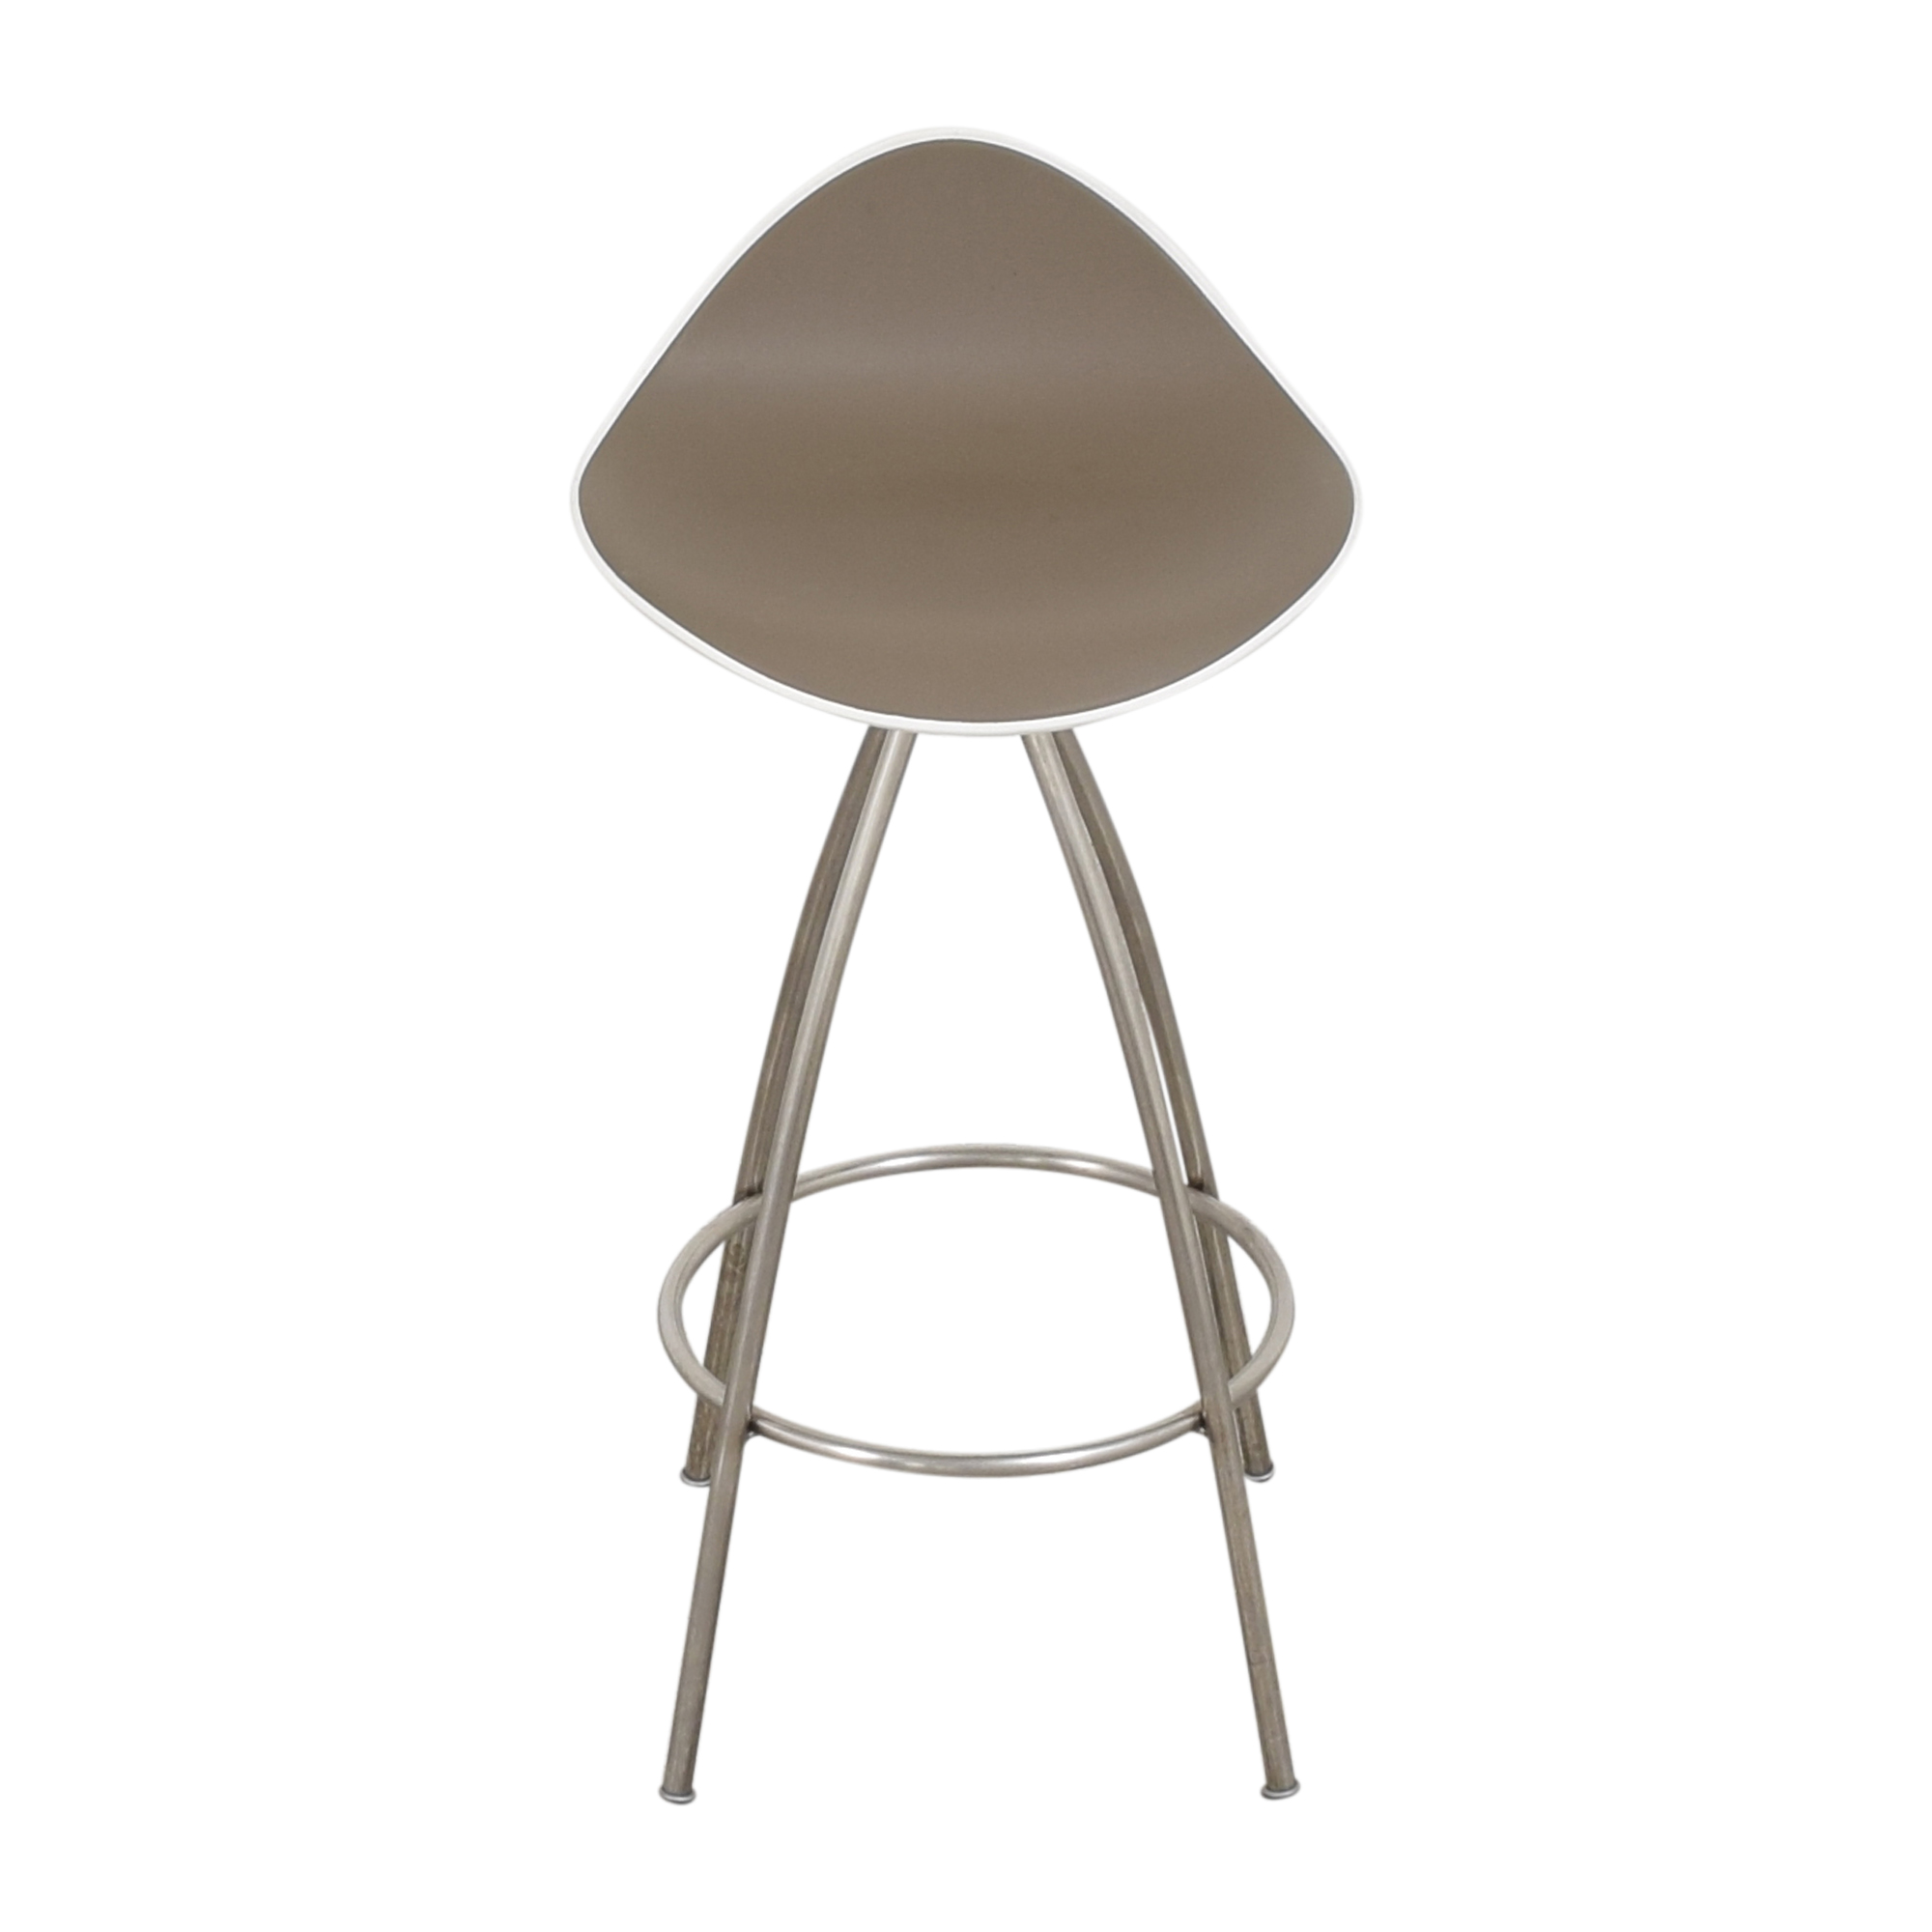 shop Design Within Reach Onda Counter Stool Design Within Reach Chairs